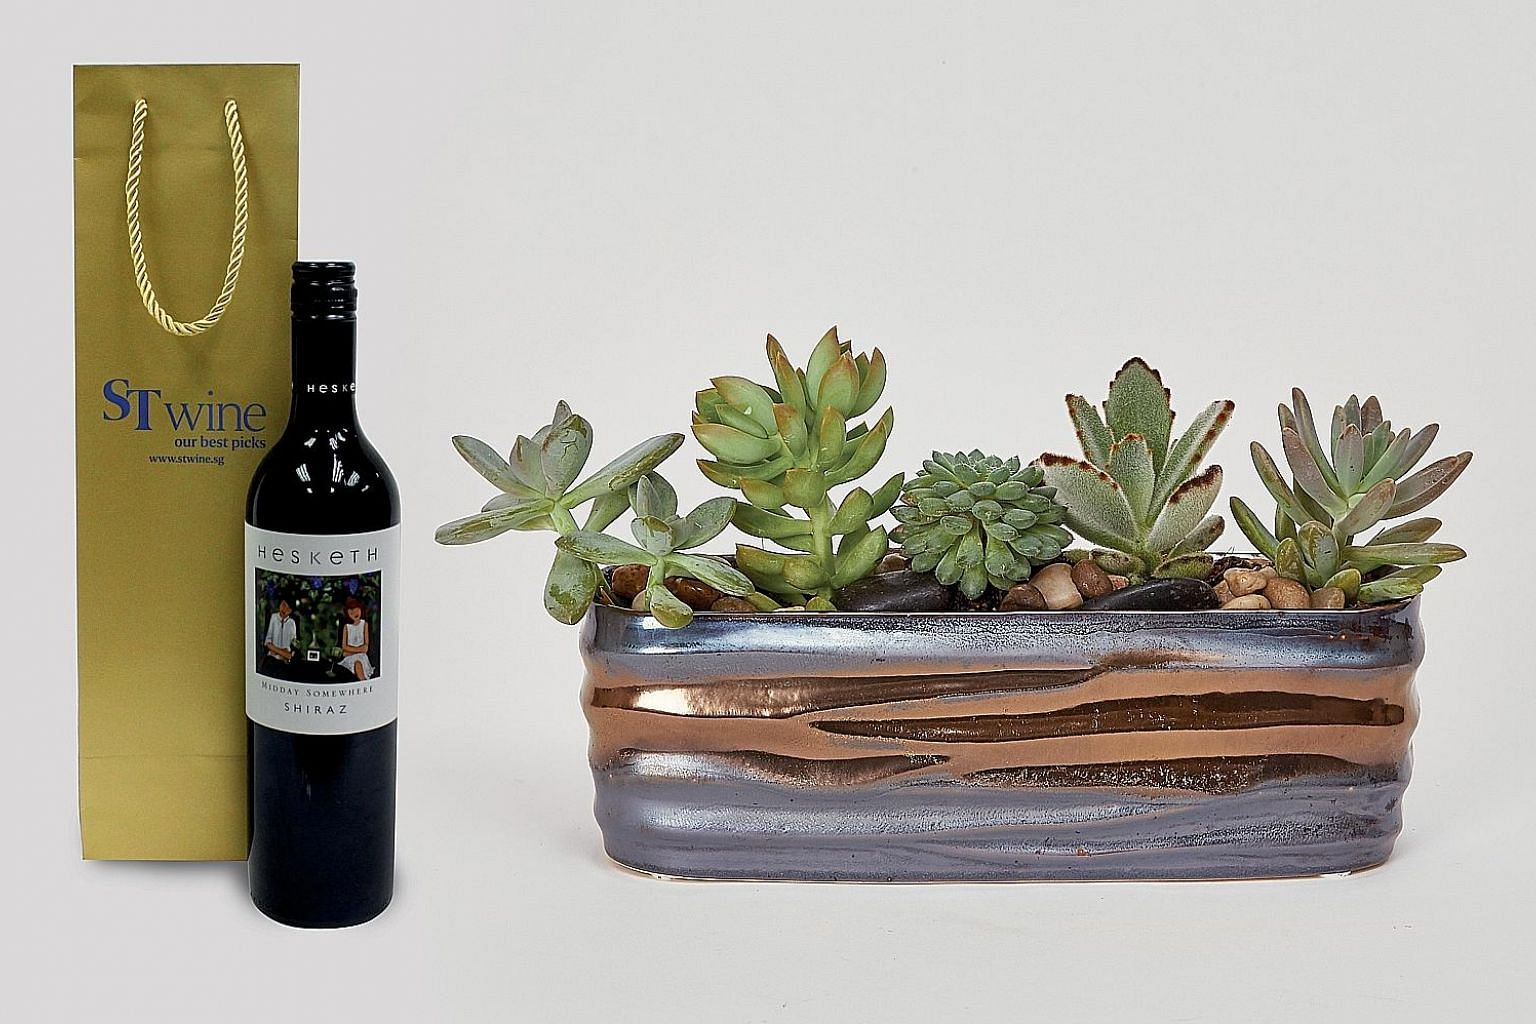 The new series of wine and floral gift sets which are now available on the ST Wine website includes the Harmony of Five, an arrangement of five succulents with one bottle of wine.